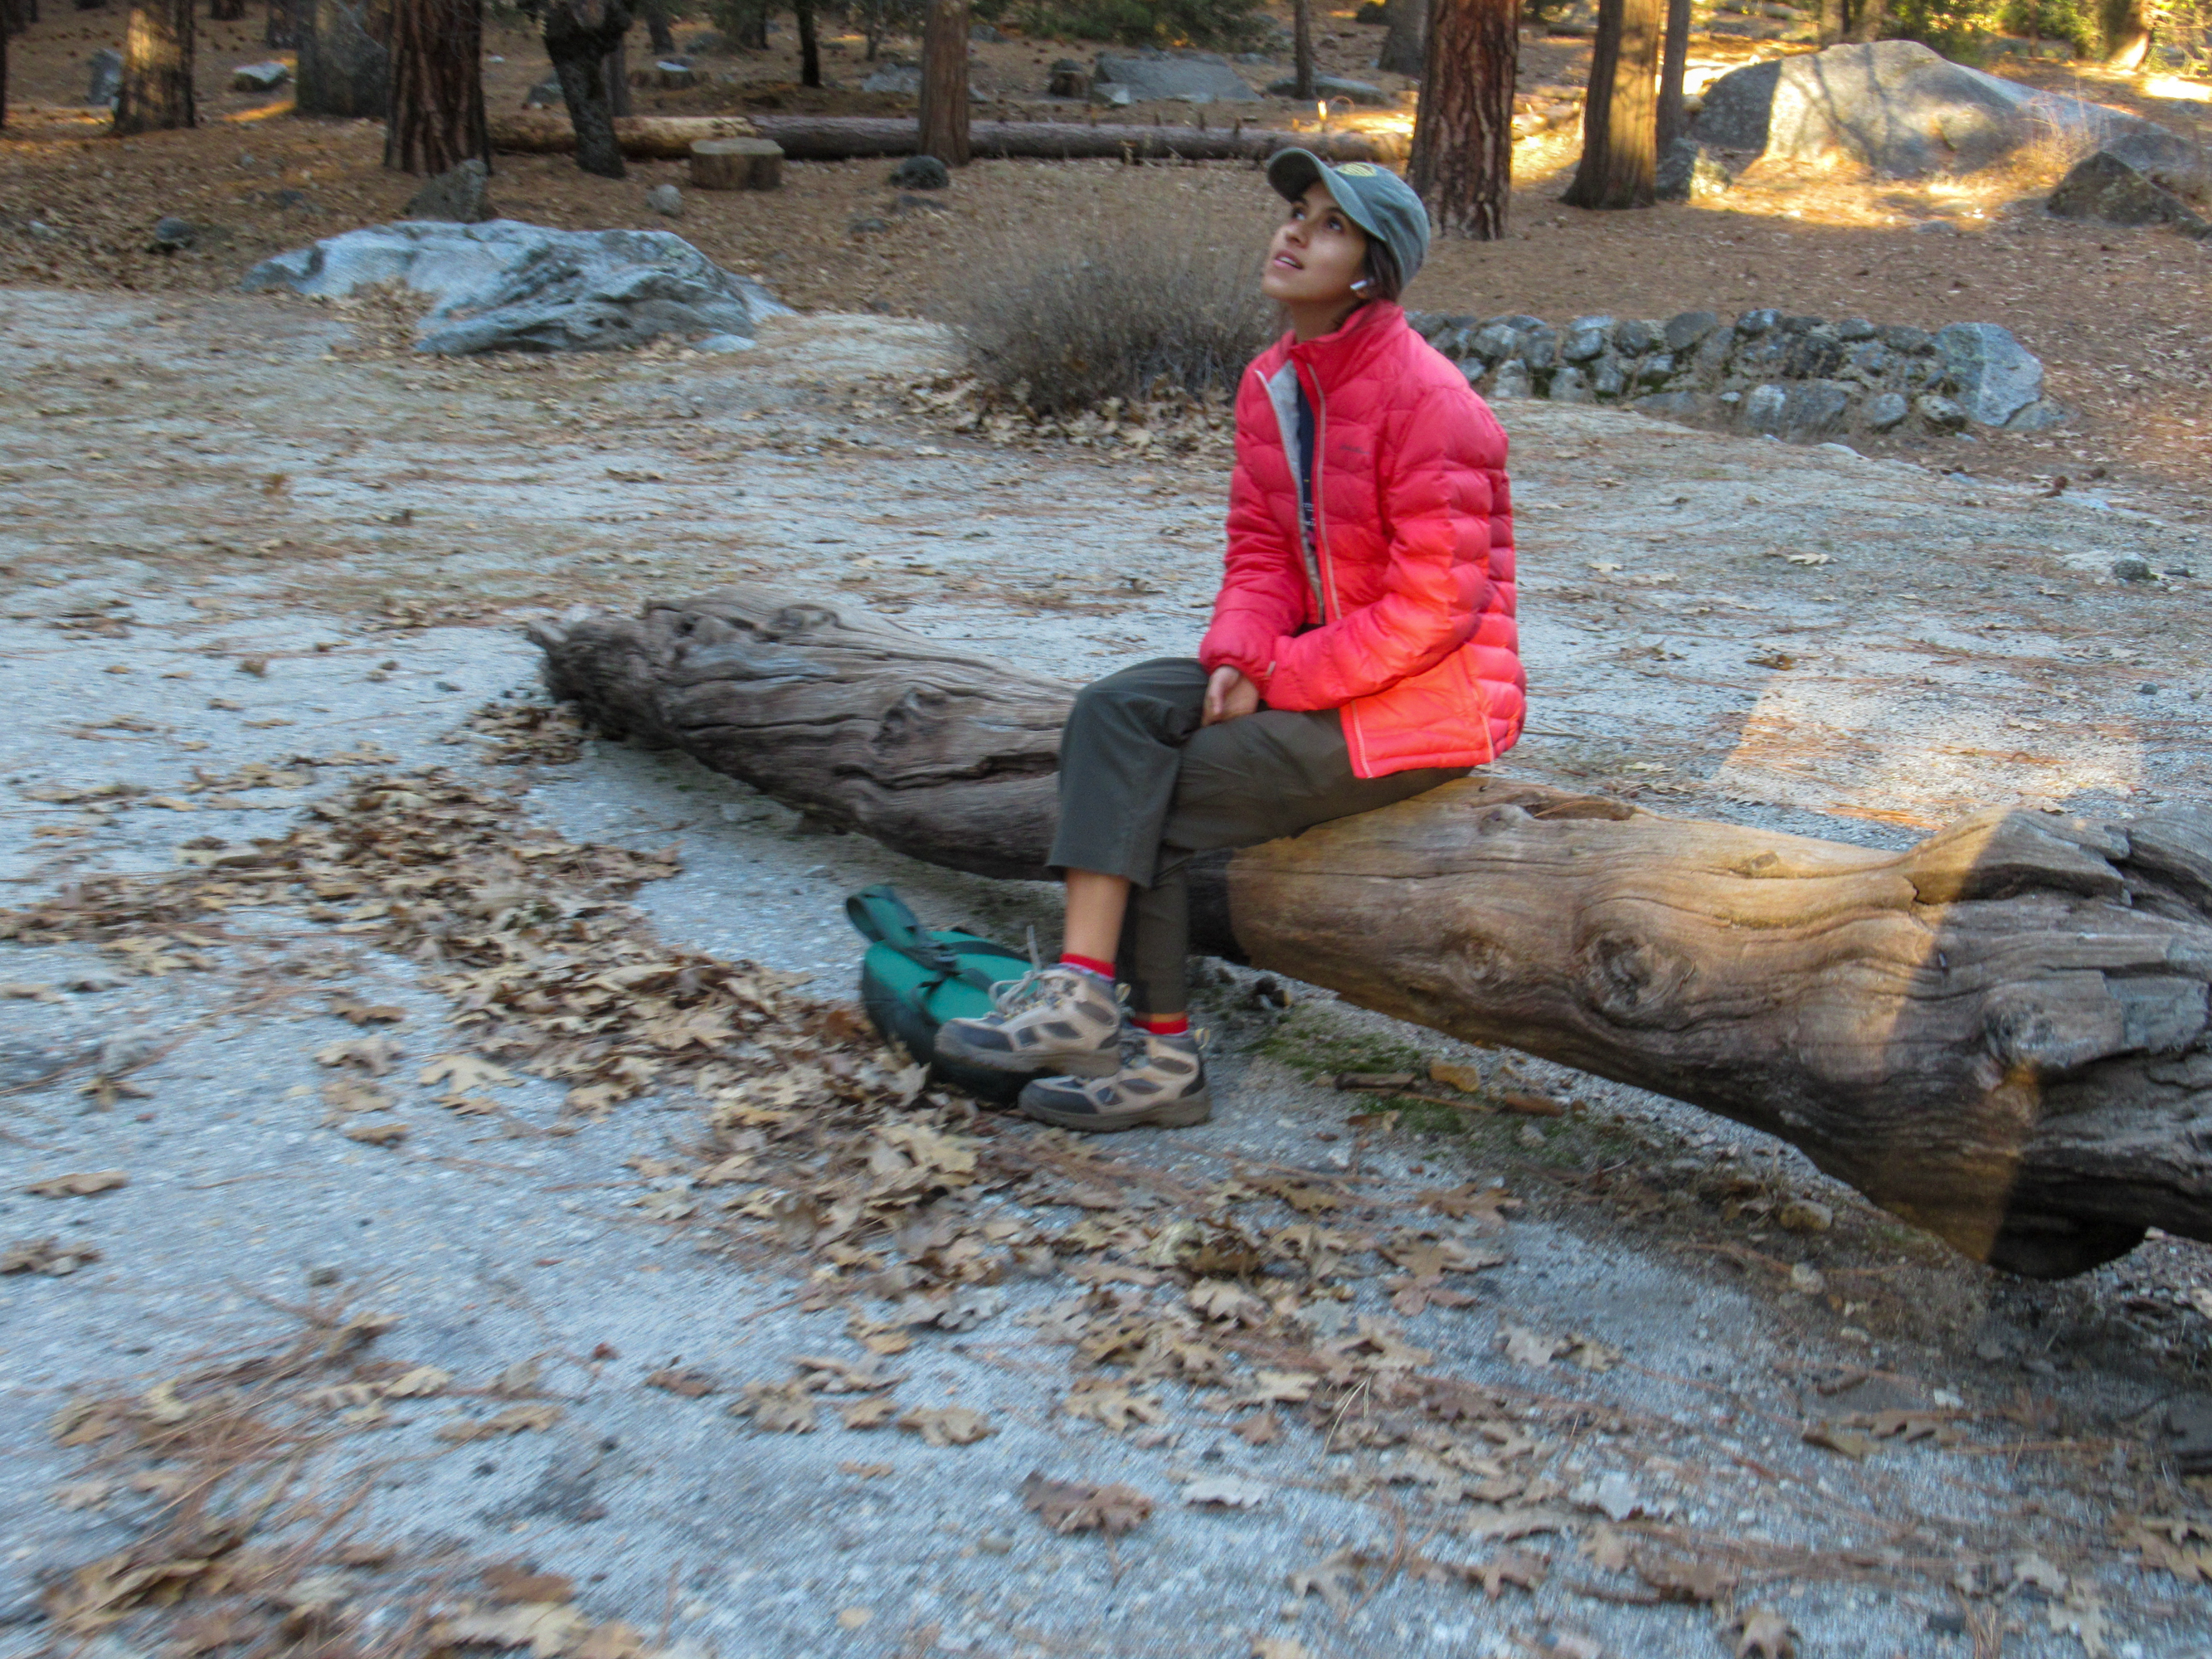 Madison Snively contemplatively sits on a log in Yosemite Valley.